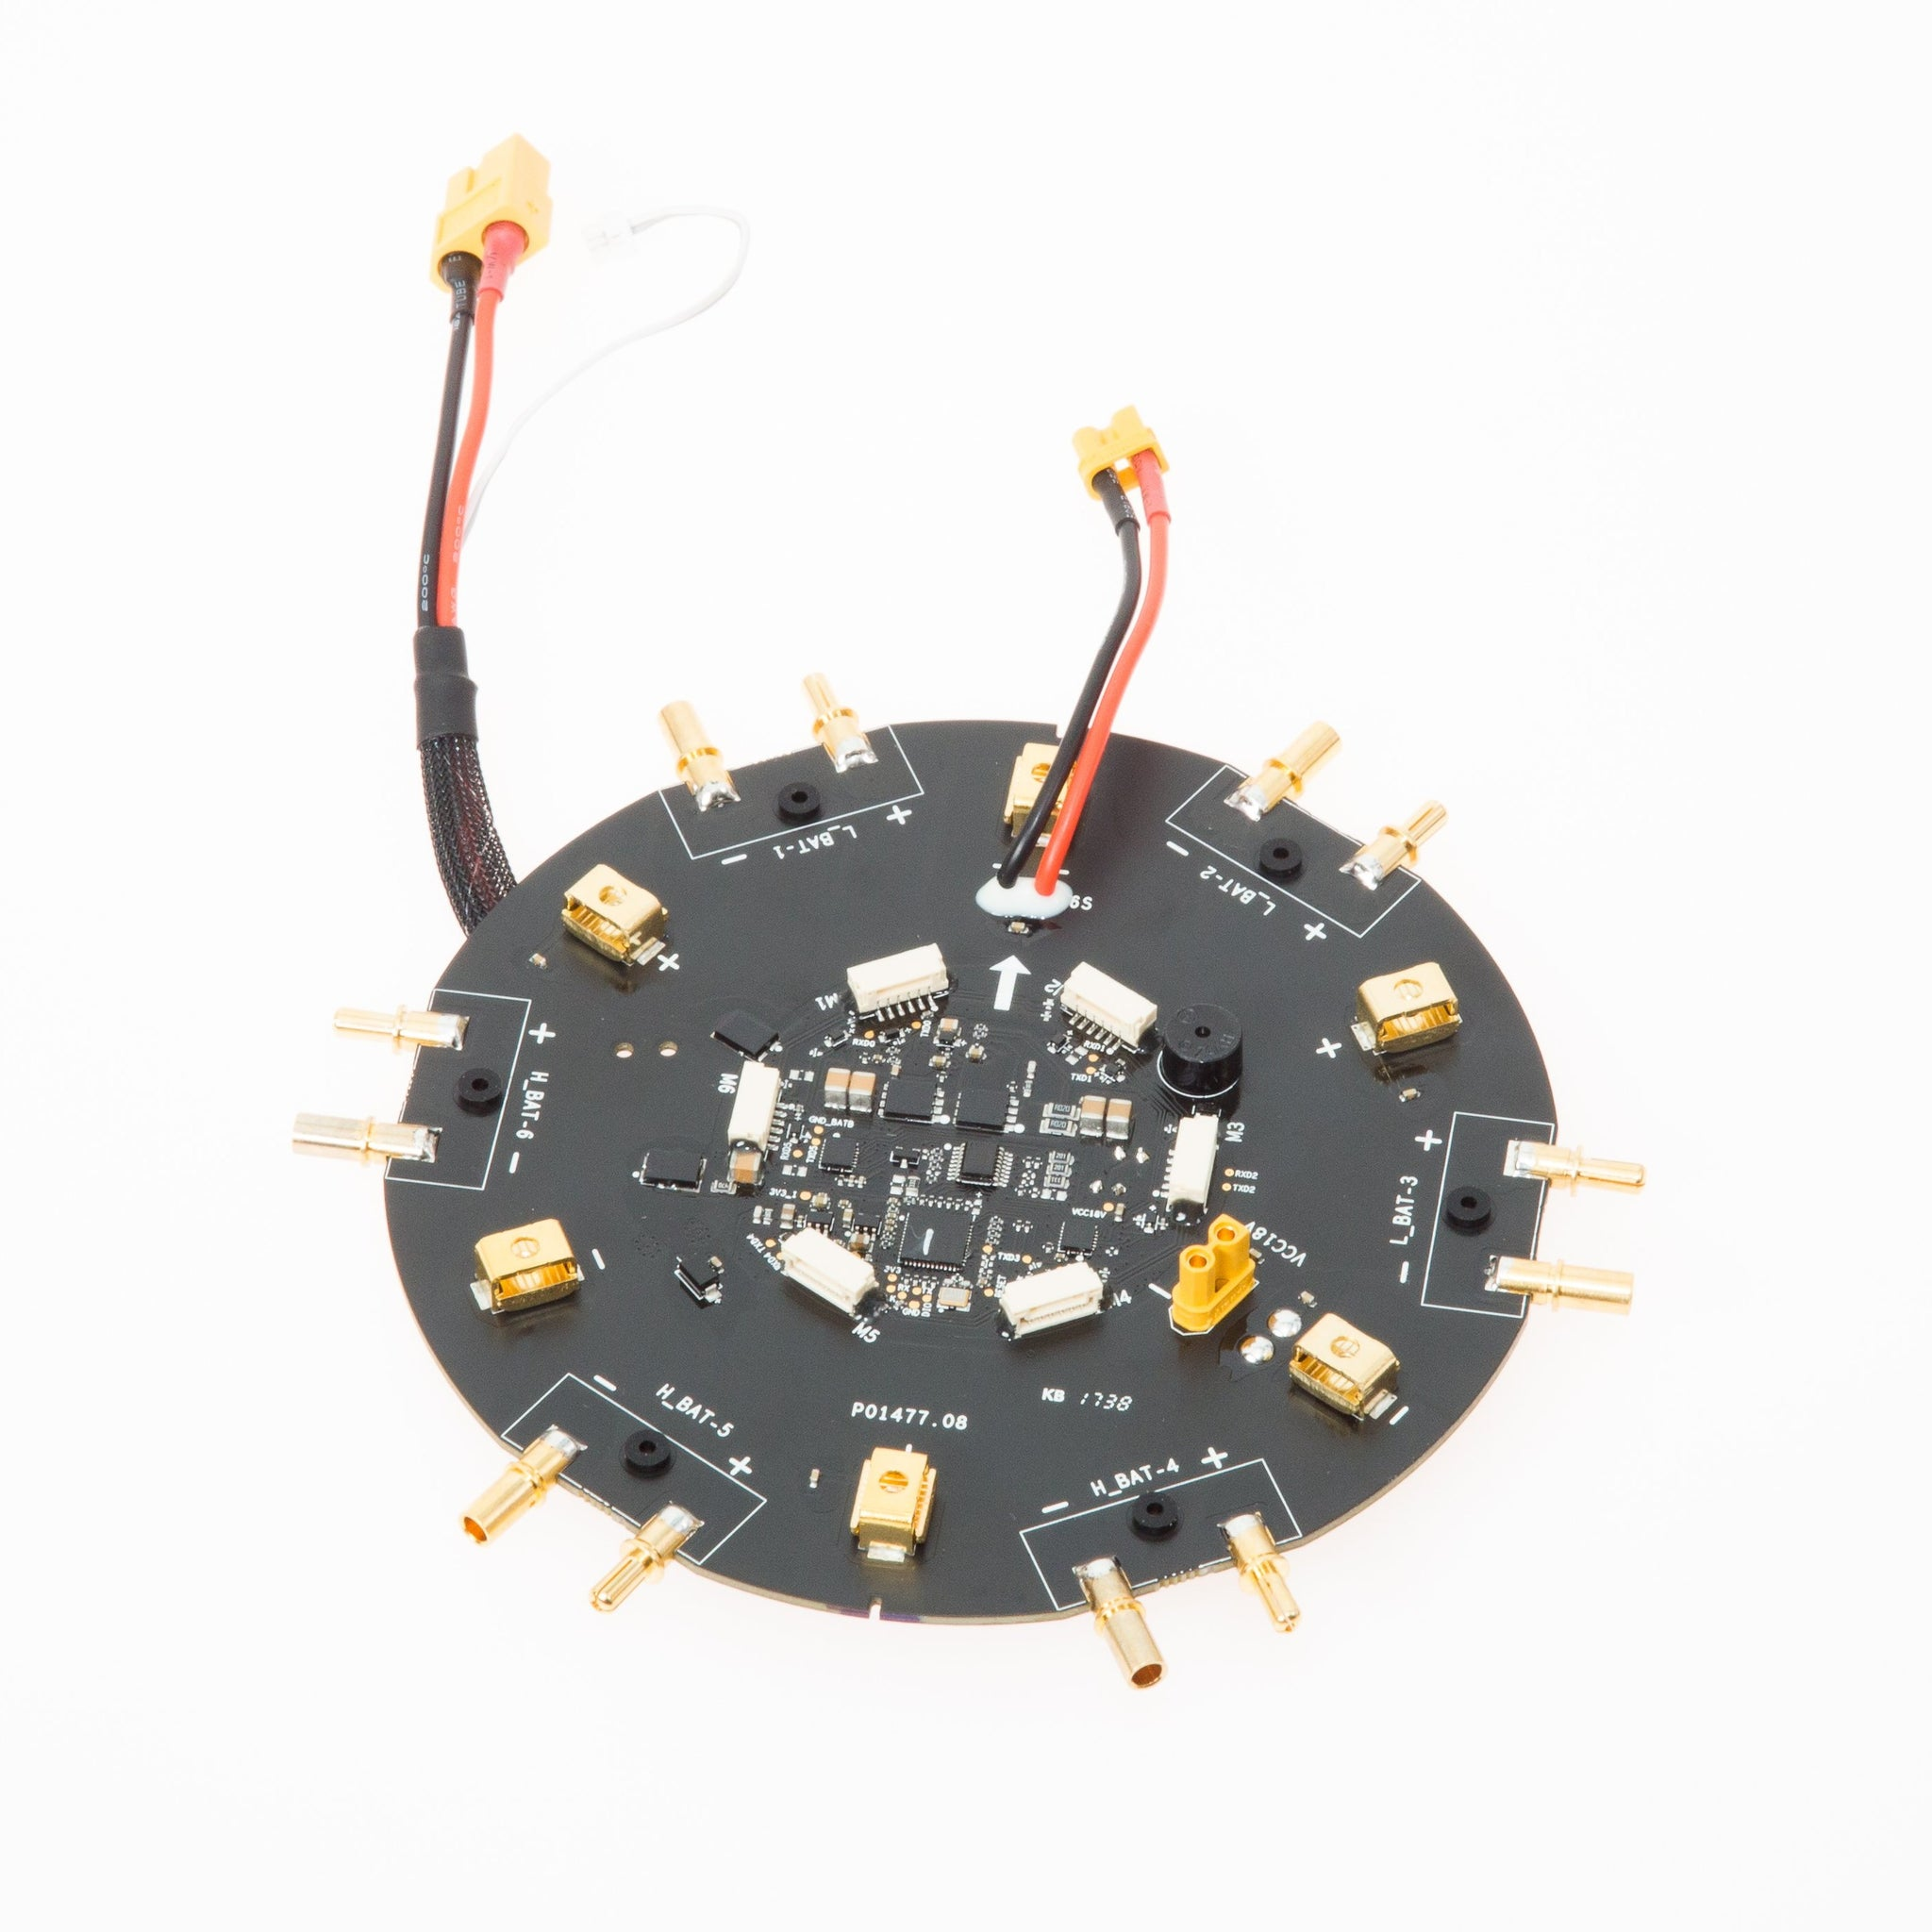 Matrice 600 Power distribution board (M600) - Cloud City Drones